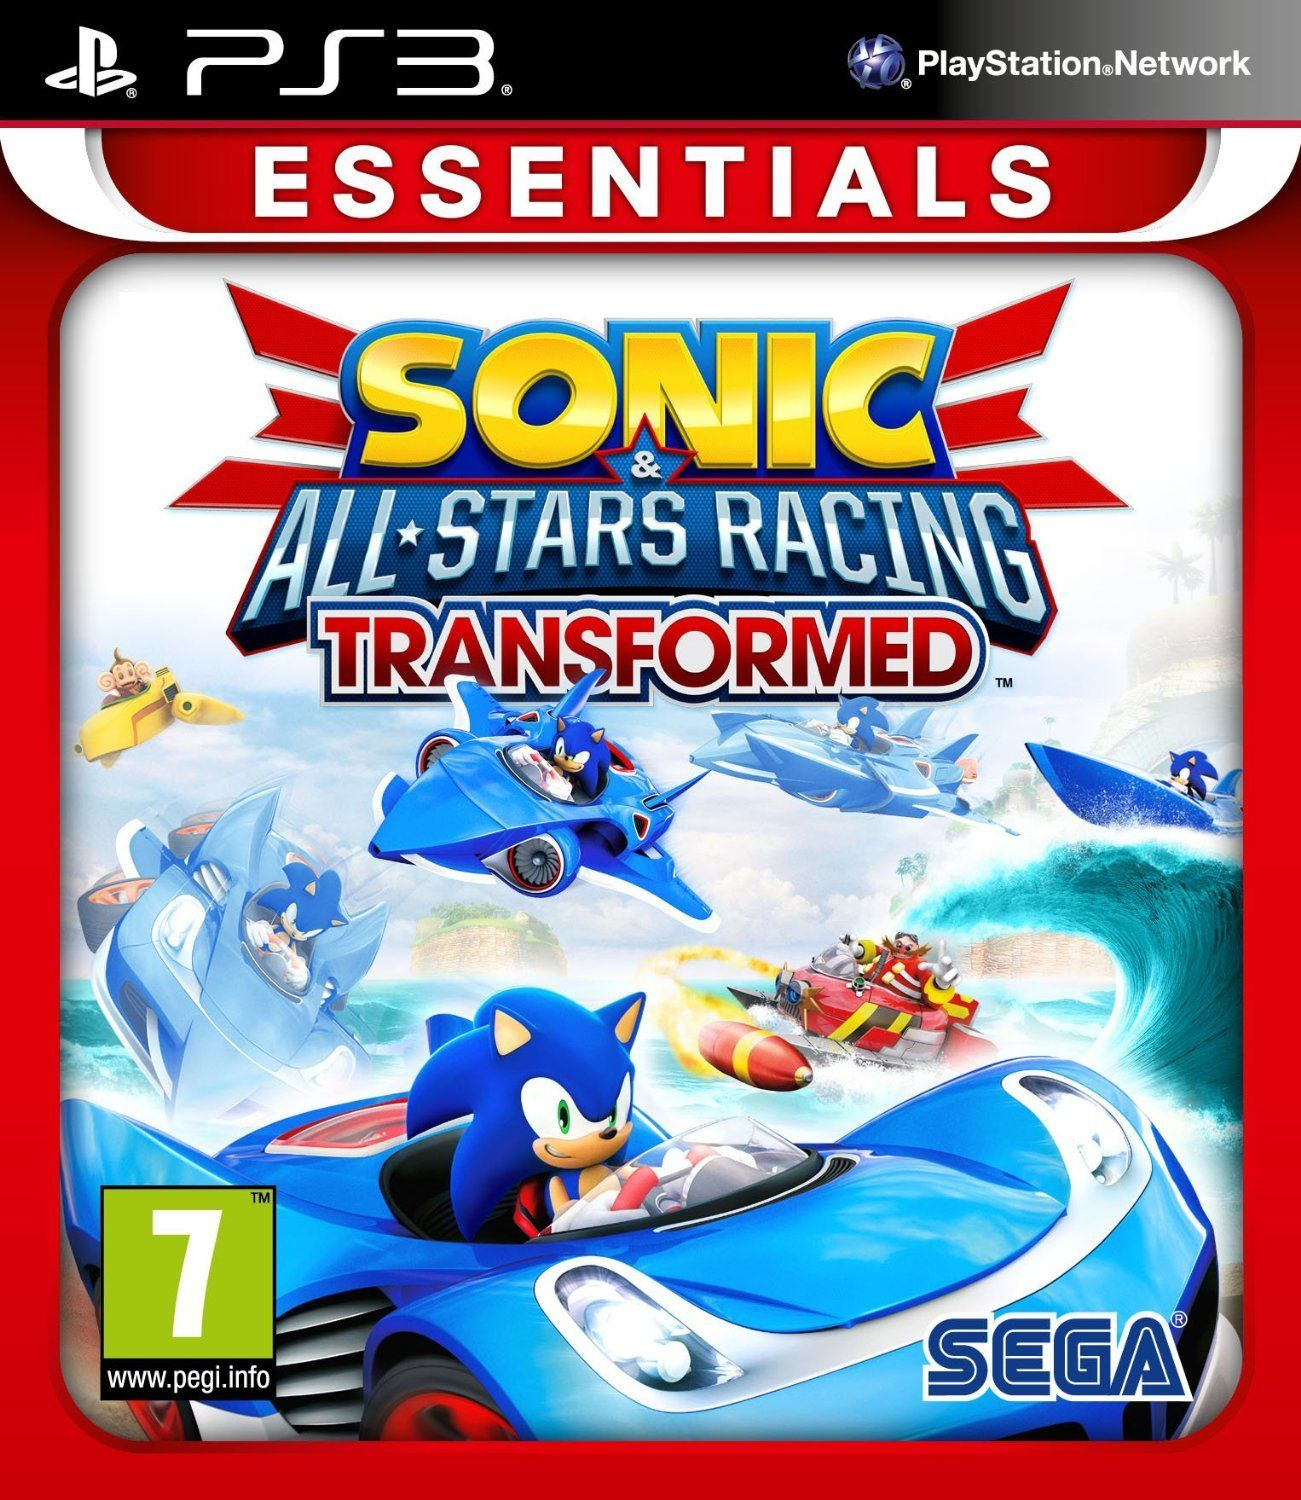 Sonic All Star Racing Transformed Essentials Sonic And The All Stars Cast Line Up On The Starting Grid Once Ukonlineshopping Uk Nintendo 3ds All Star Sonic